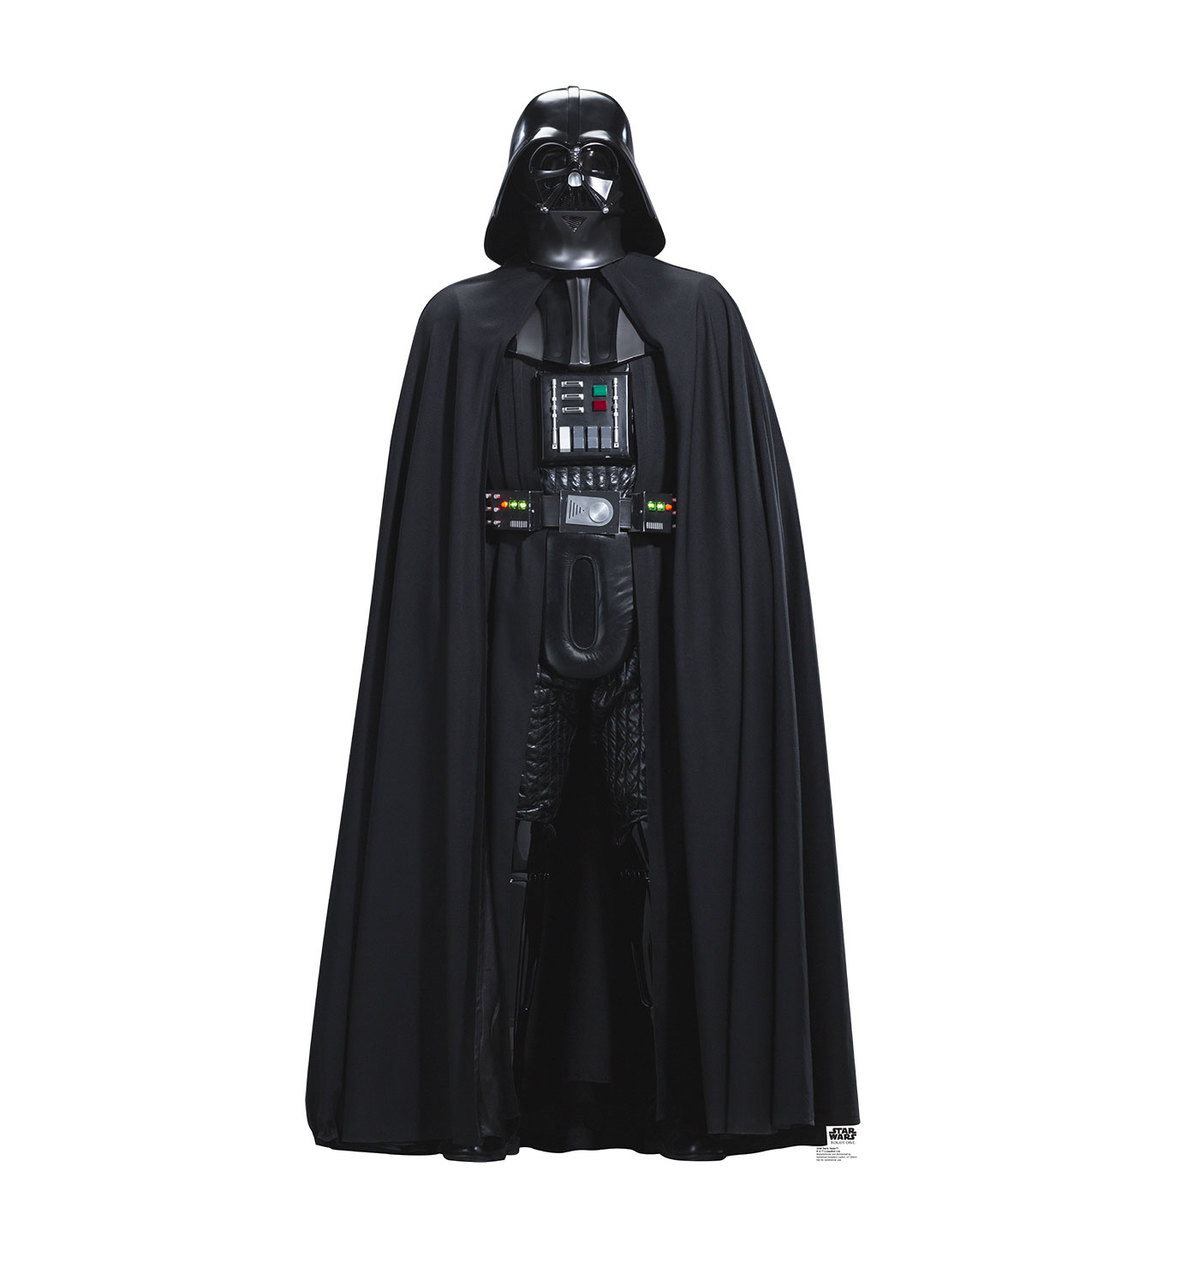 Darth Vader-Rogue One Cardboard Cutout 2246